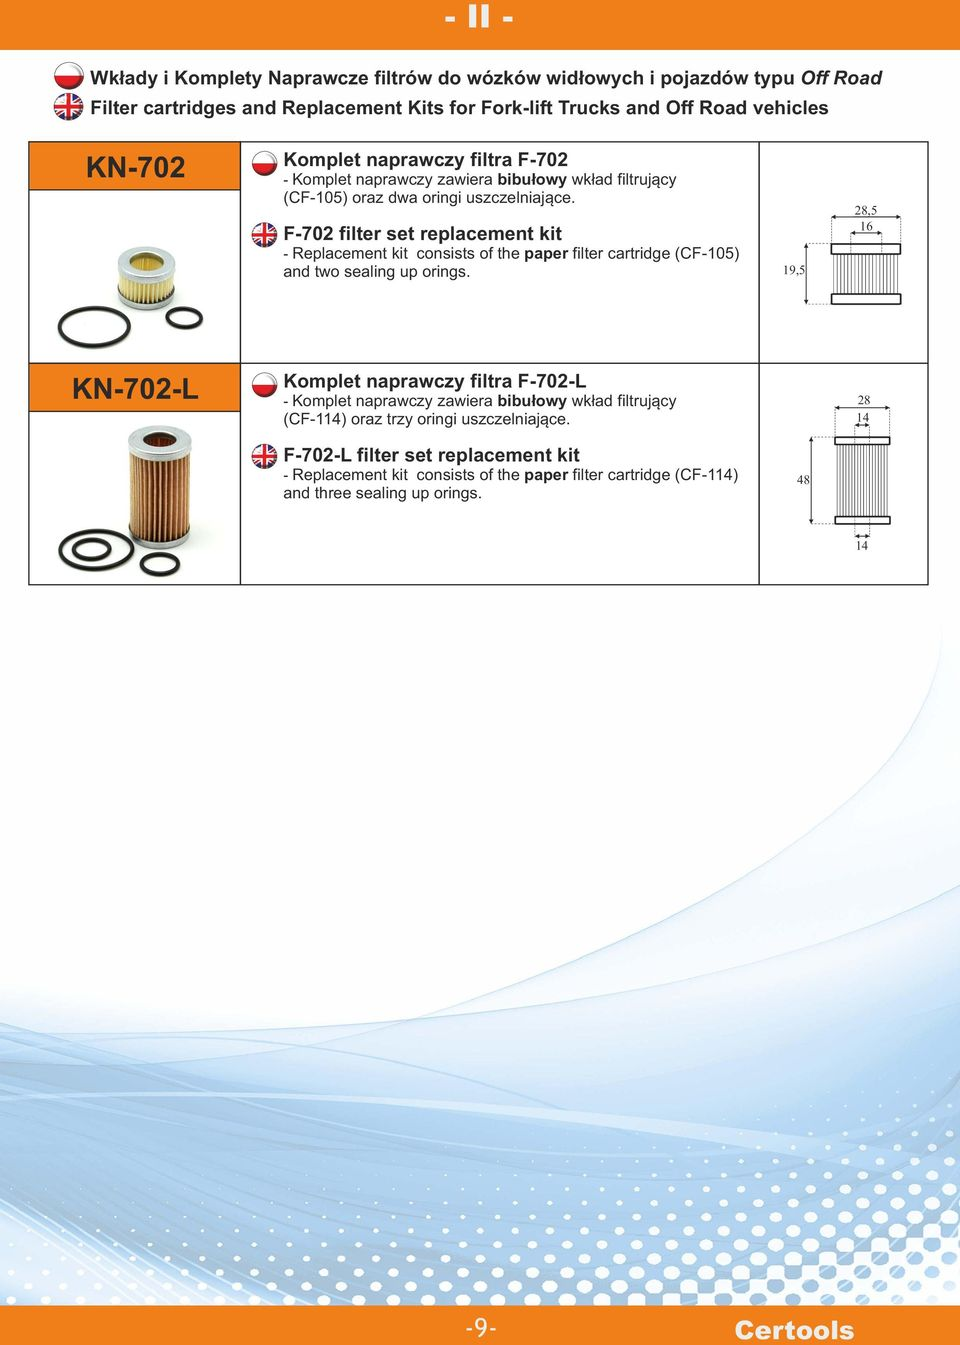 F-702 filter set replacement kit - Replacement kit consists of the paper filter cartridge (CF-105) and two sealing up orings.